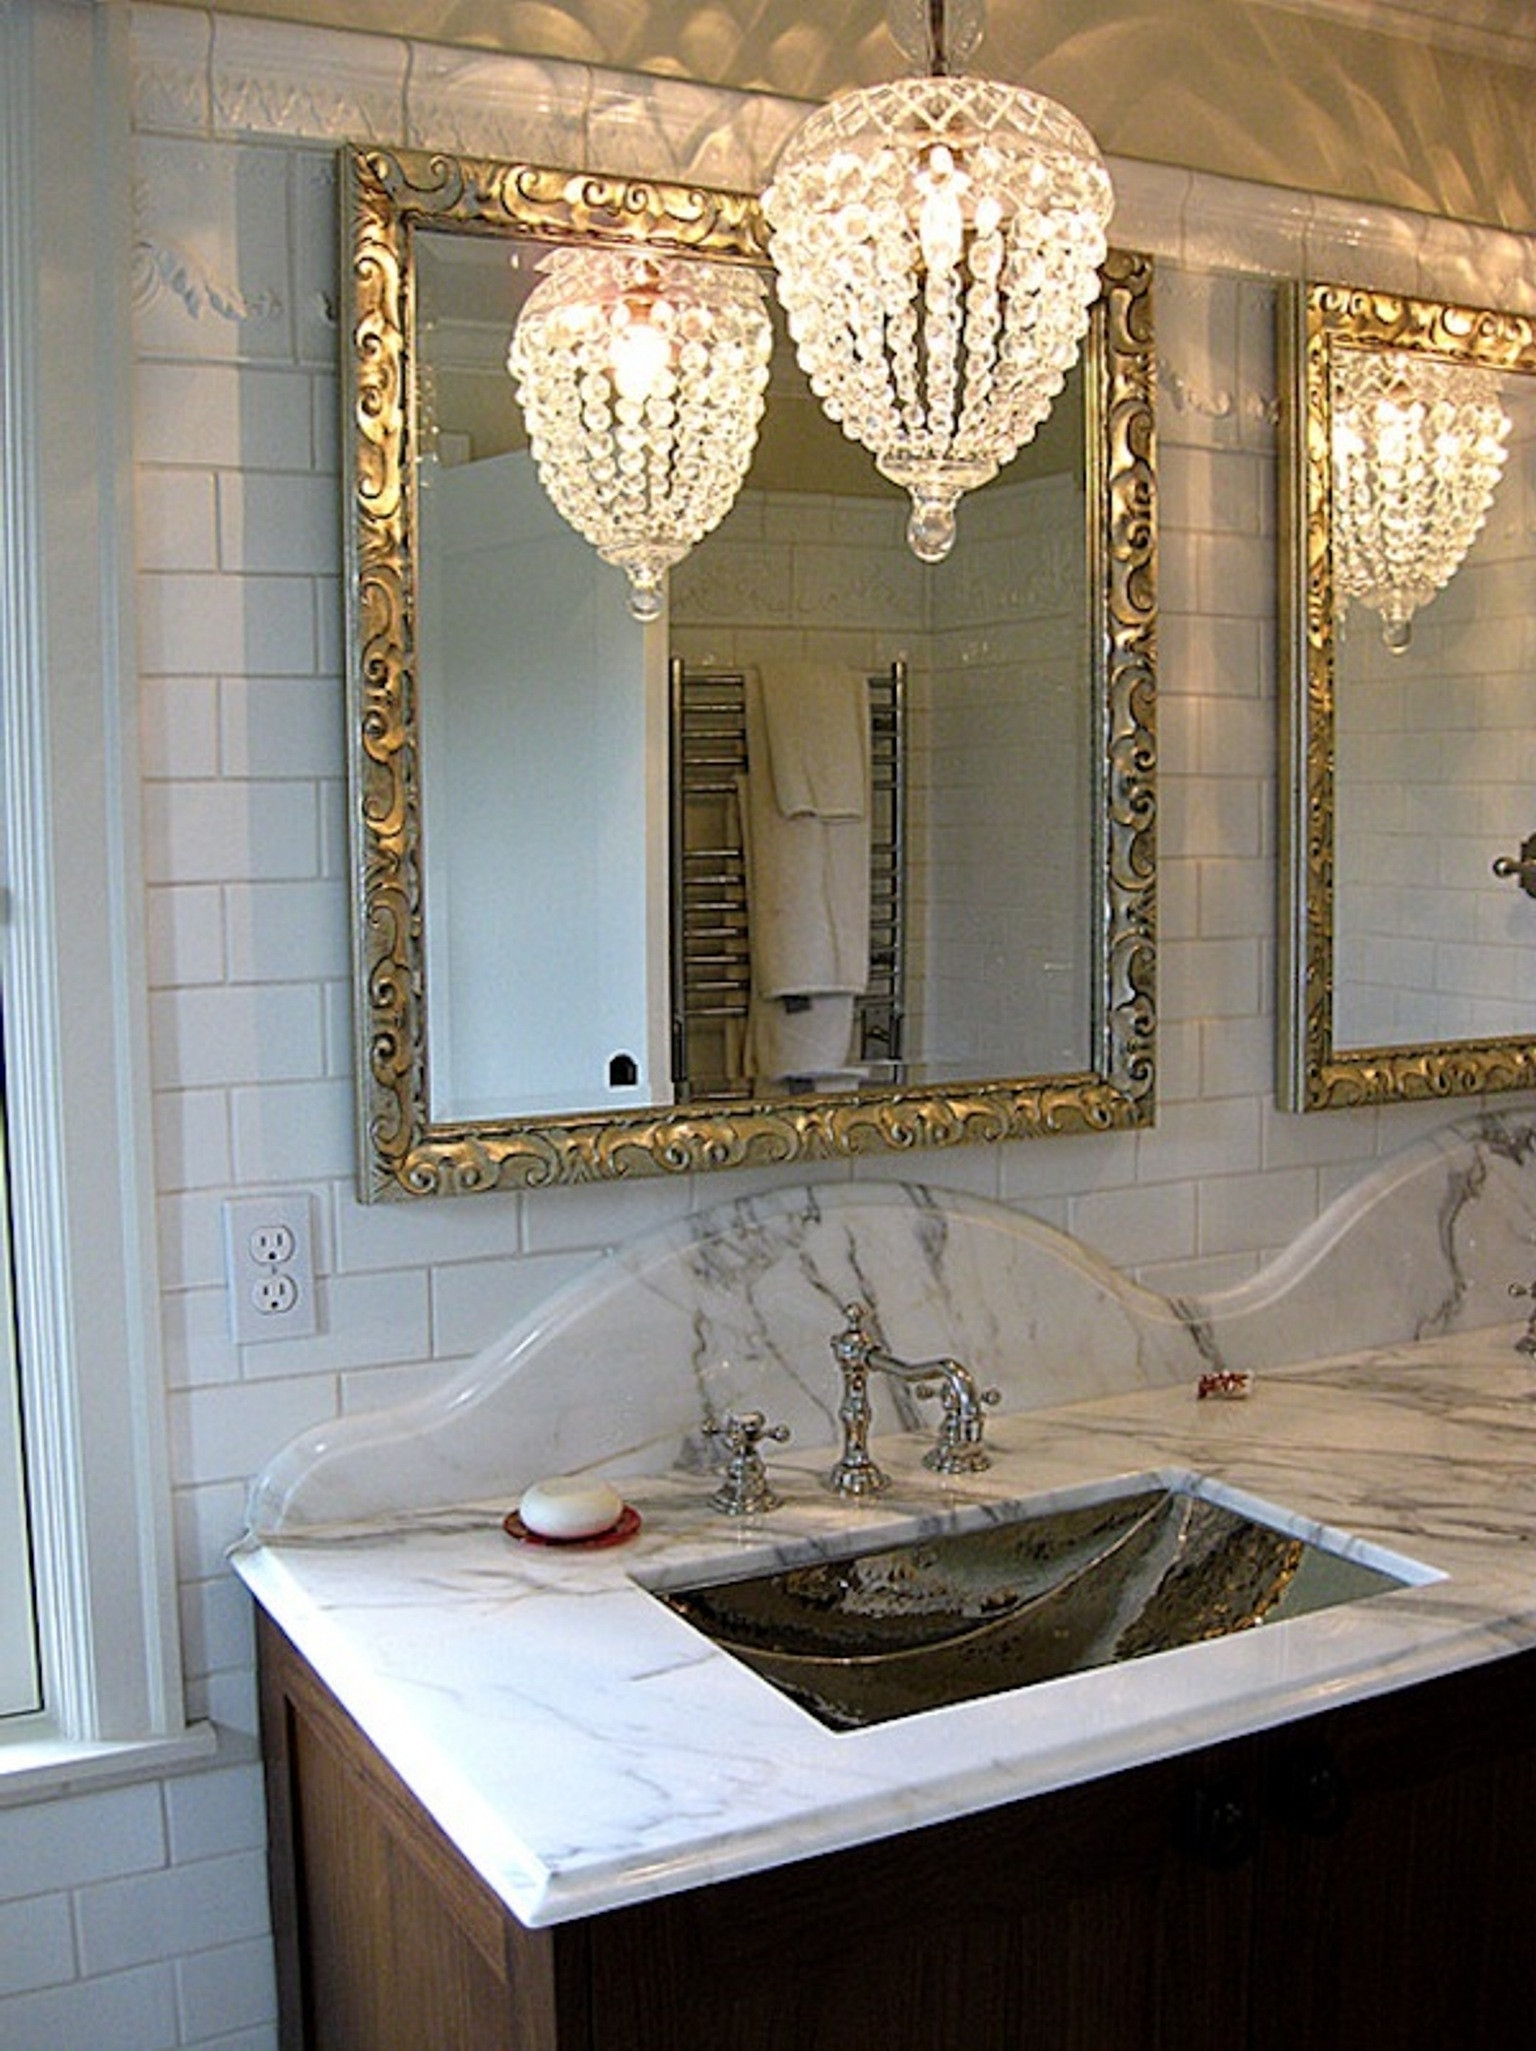 Trendy Chandeliers : Bathroom Chandeliers Ideas Elegant Beneficial Bathroom Intended For Bathroom Lighting Chandeliers (View 19 of 20)